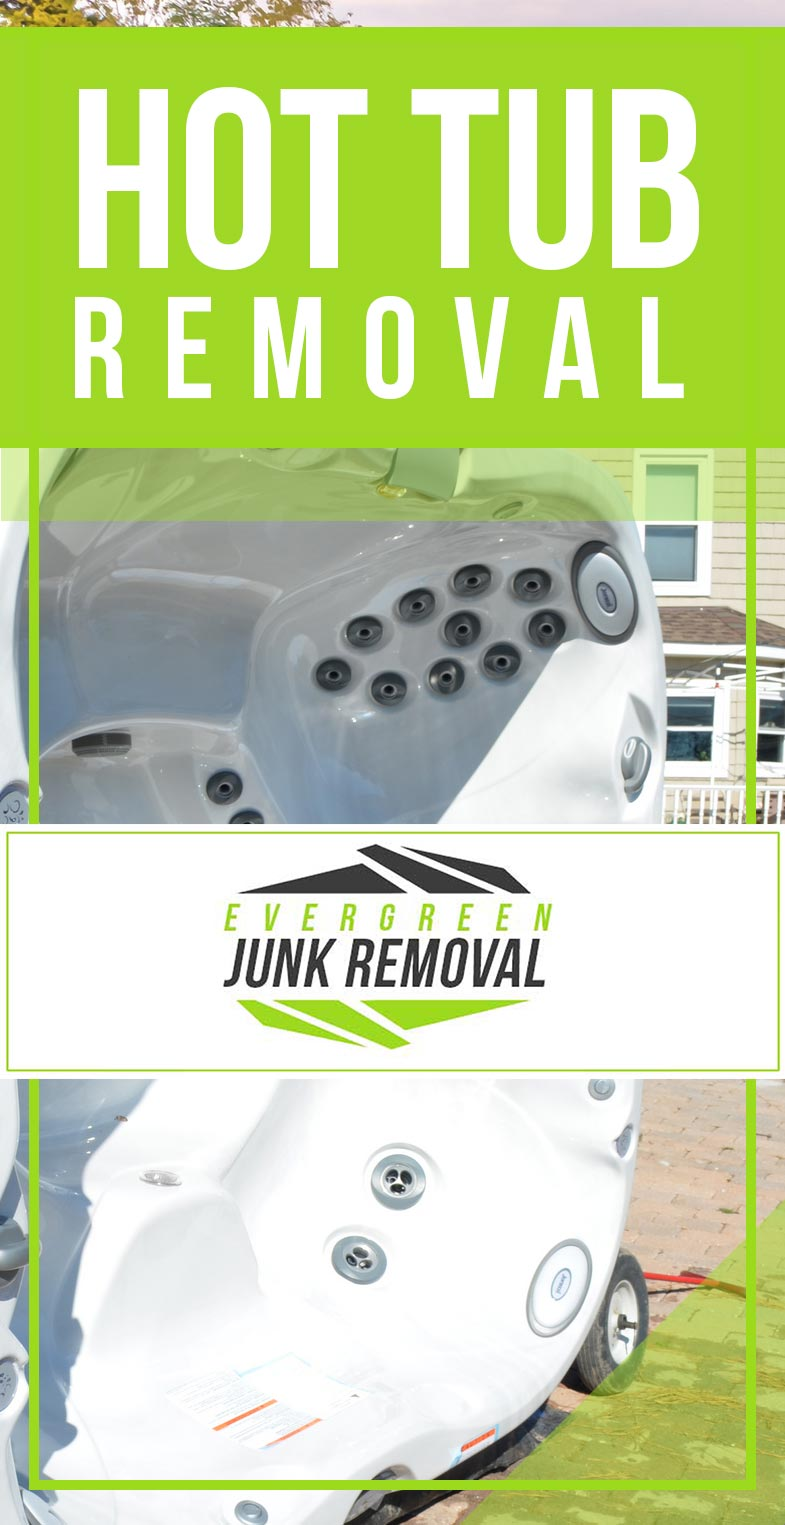 Minnetonka Hot Tub Removal